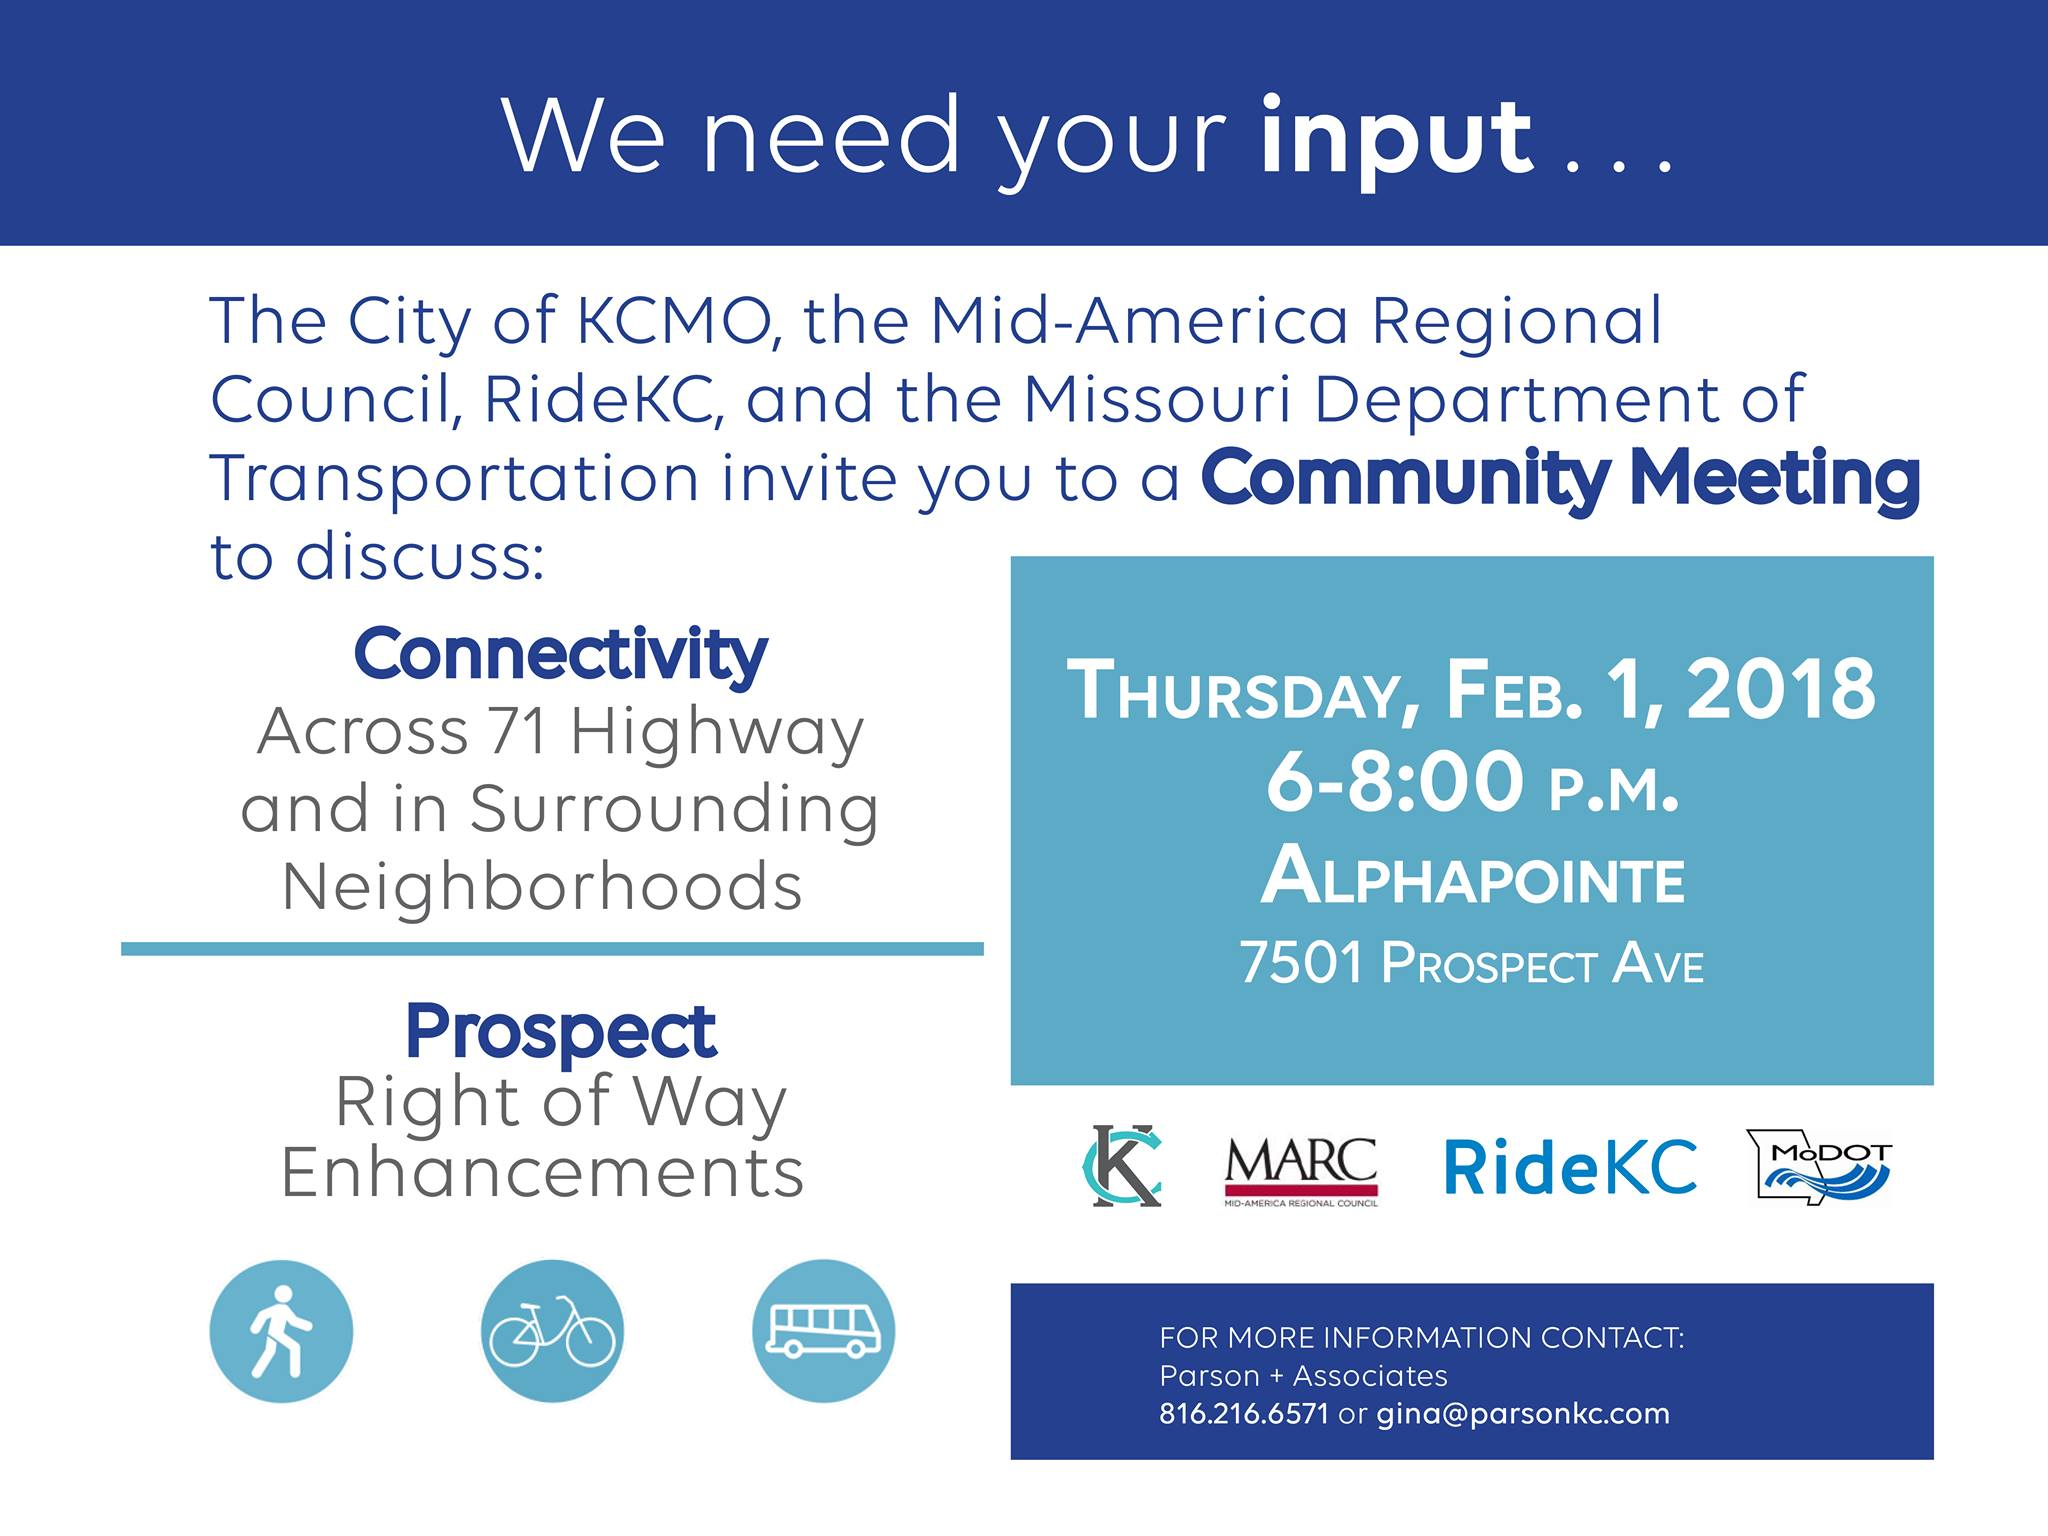 Join MARC BikeKC RideKC The City Of KCMO And MoDOT KC For A Joint Community Meeting Two Planning Sustainable Places Projects Connecting Swope